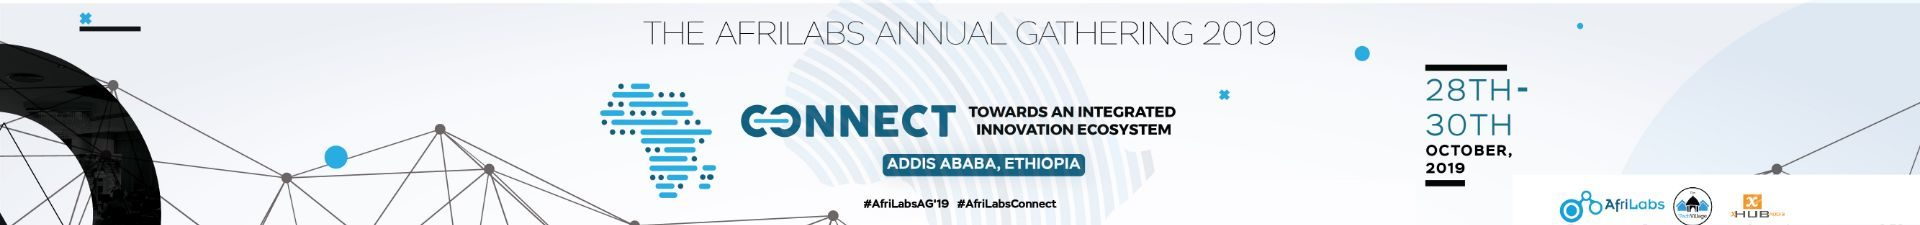 AfriLabs Annual Gathering 2019